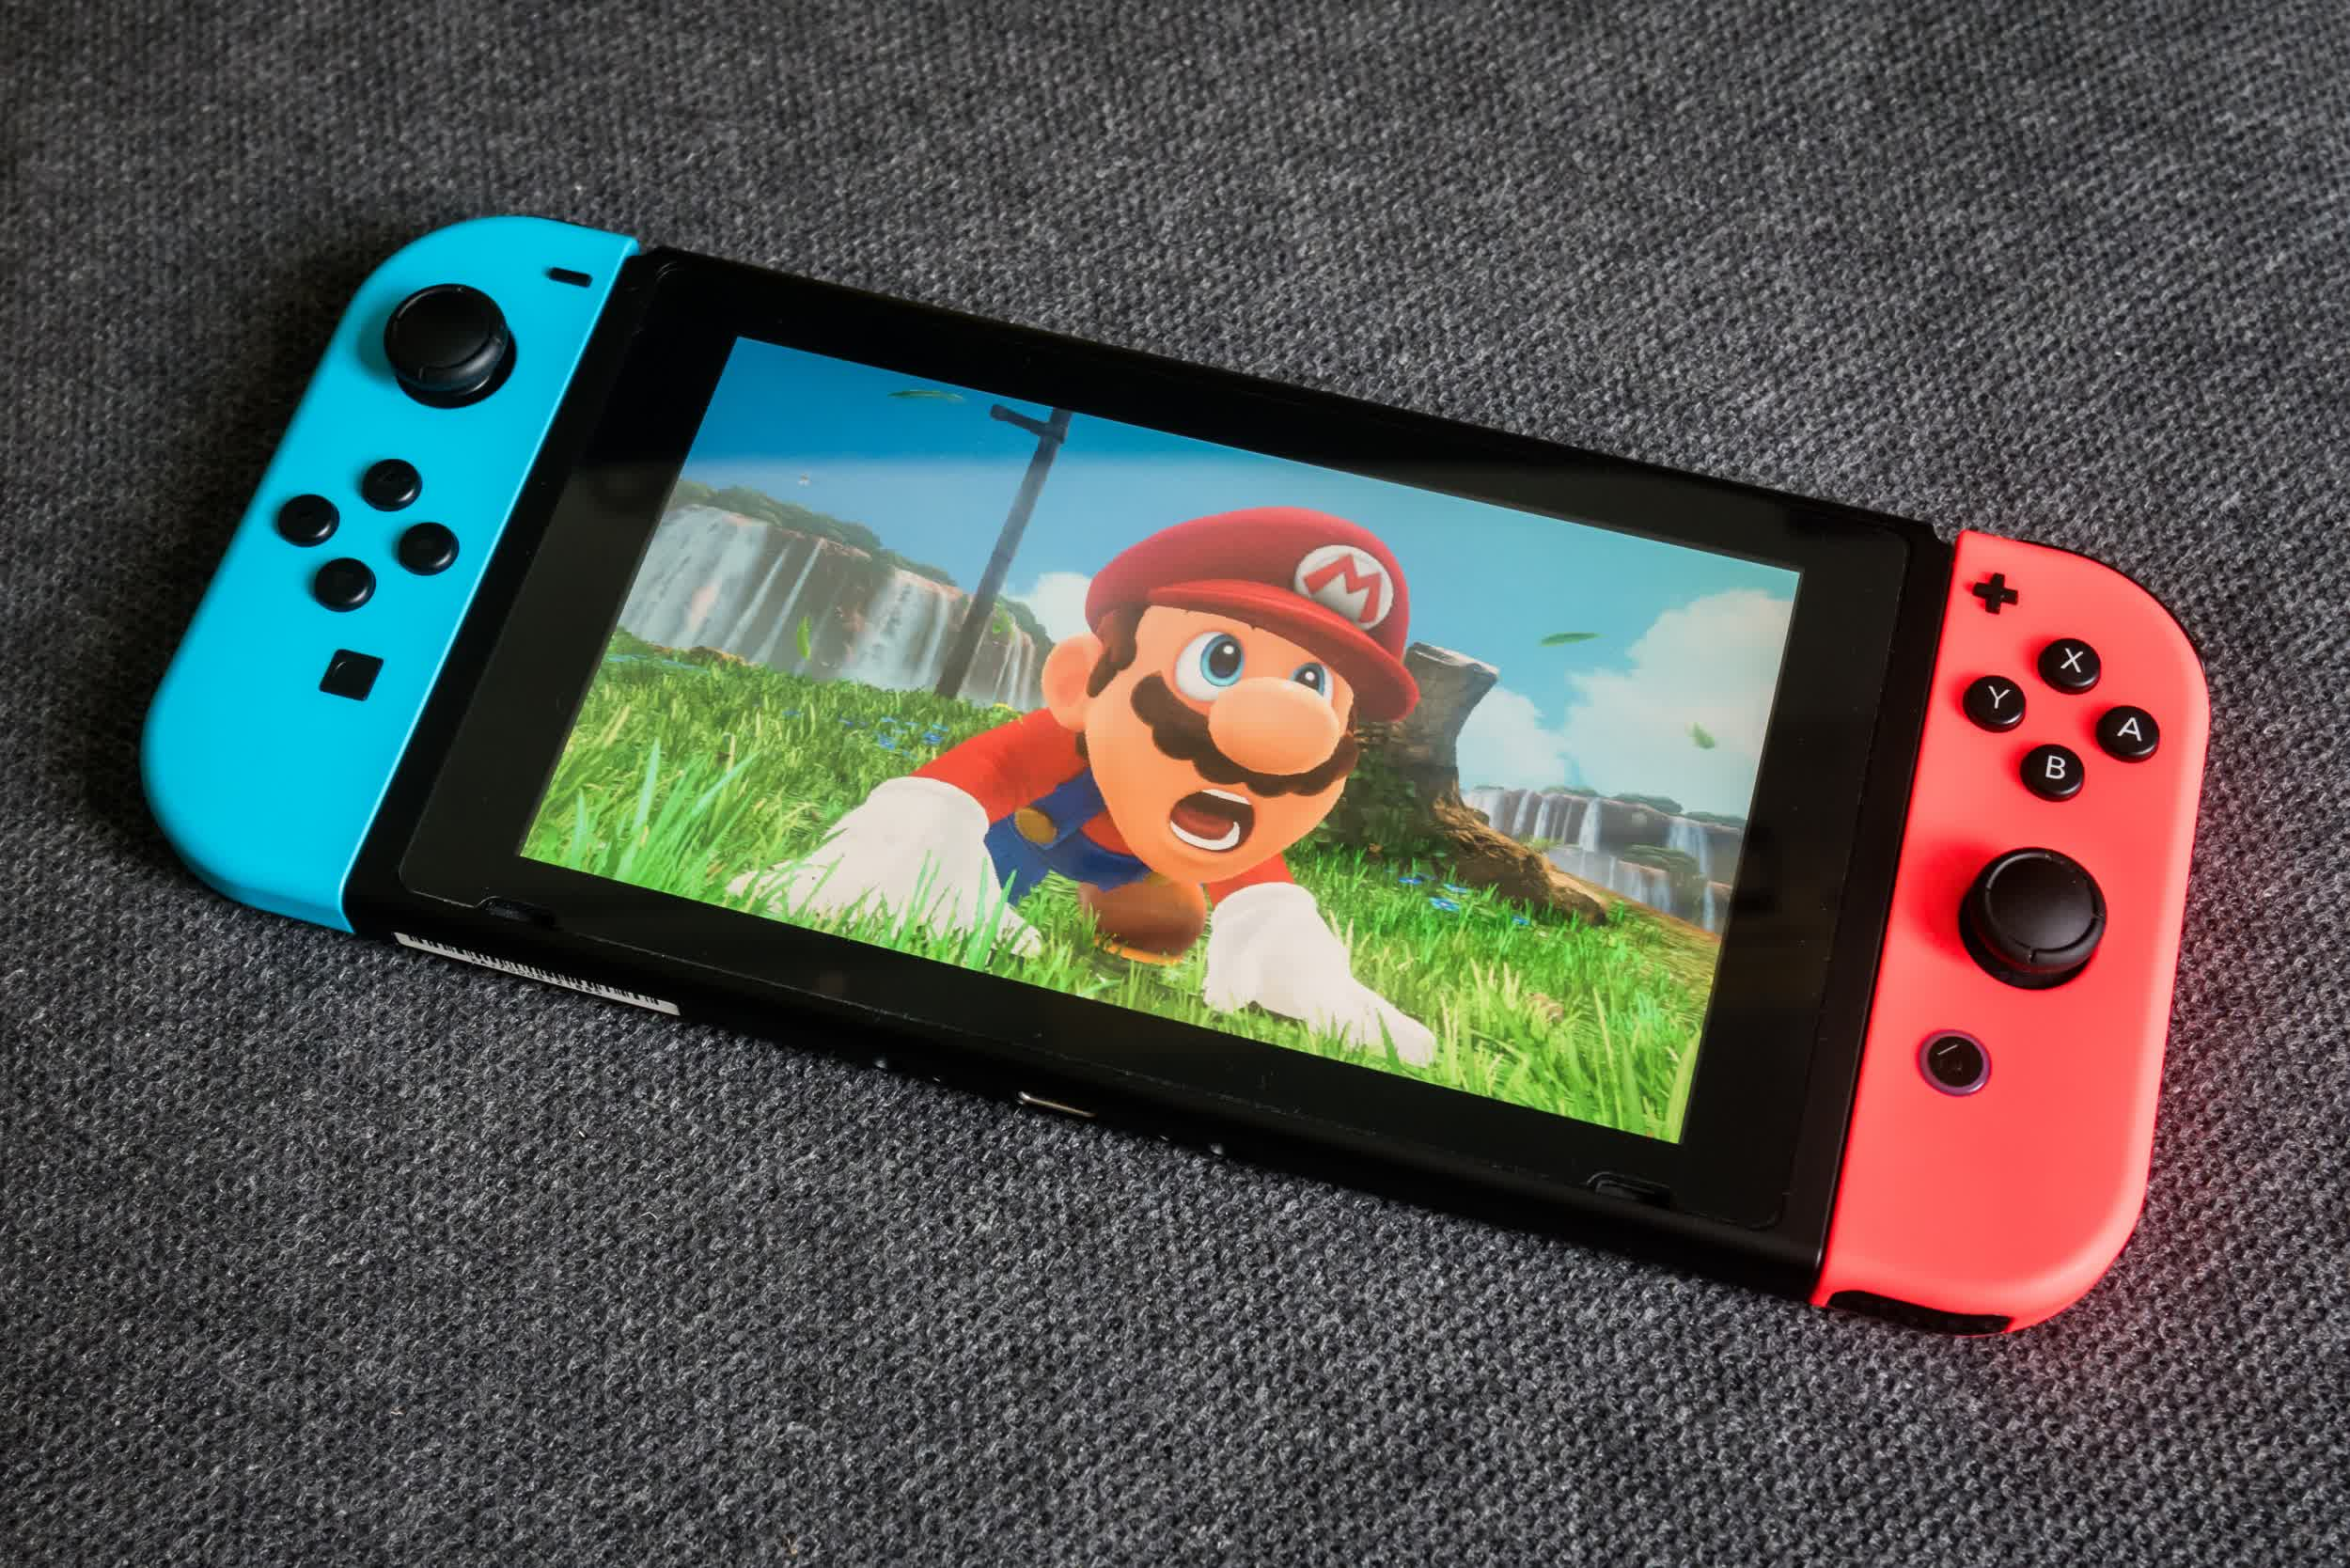 Nintendo said to be increasing Switch production once again